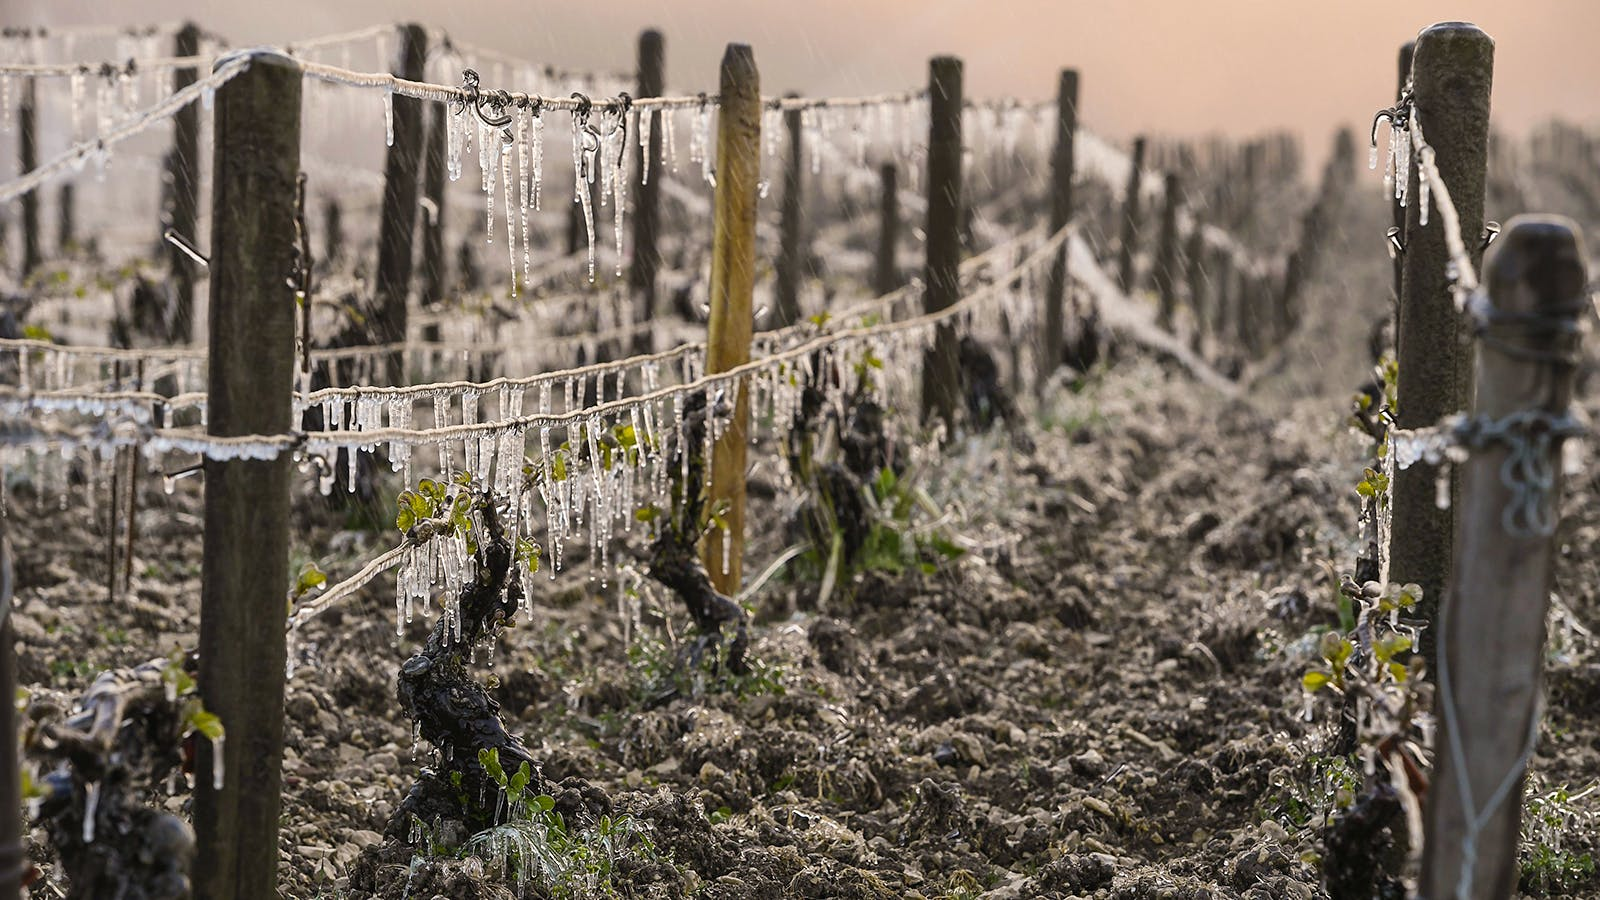 Frost, Hail Inflict Heavy Vineyard Damage Across France and Italy